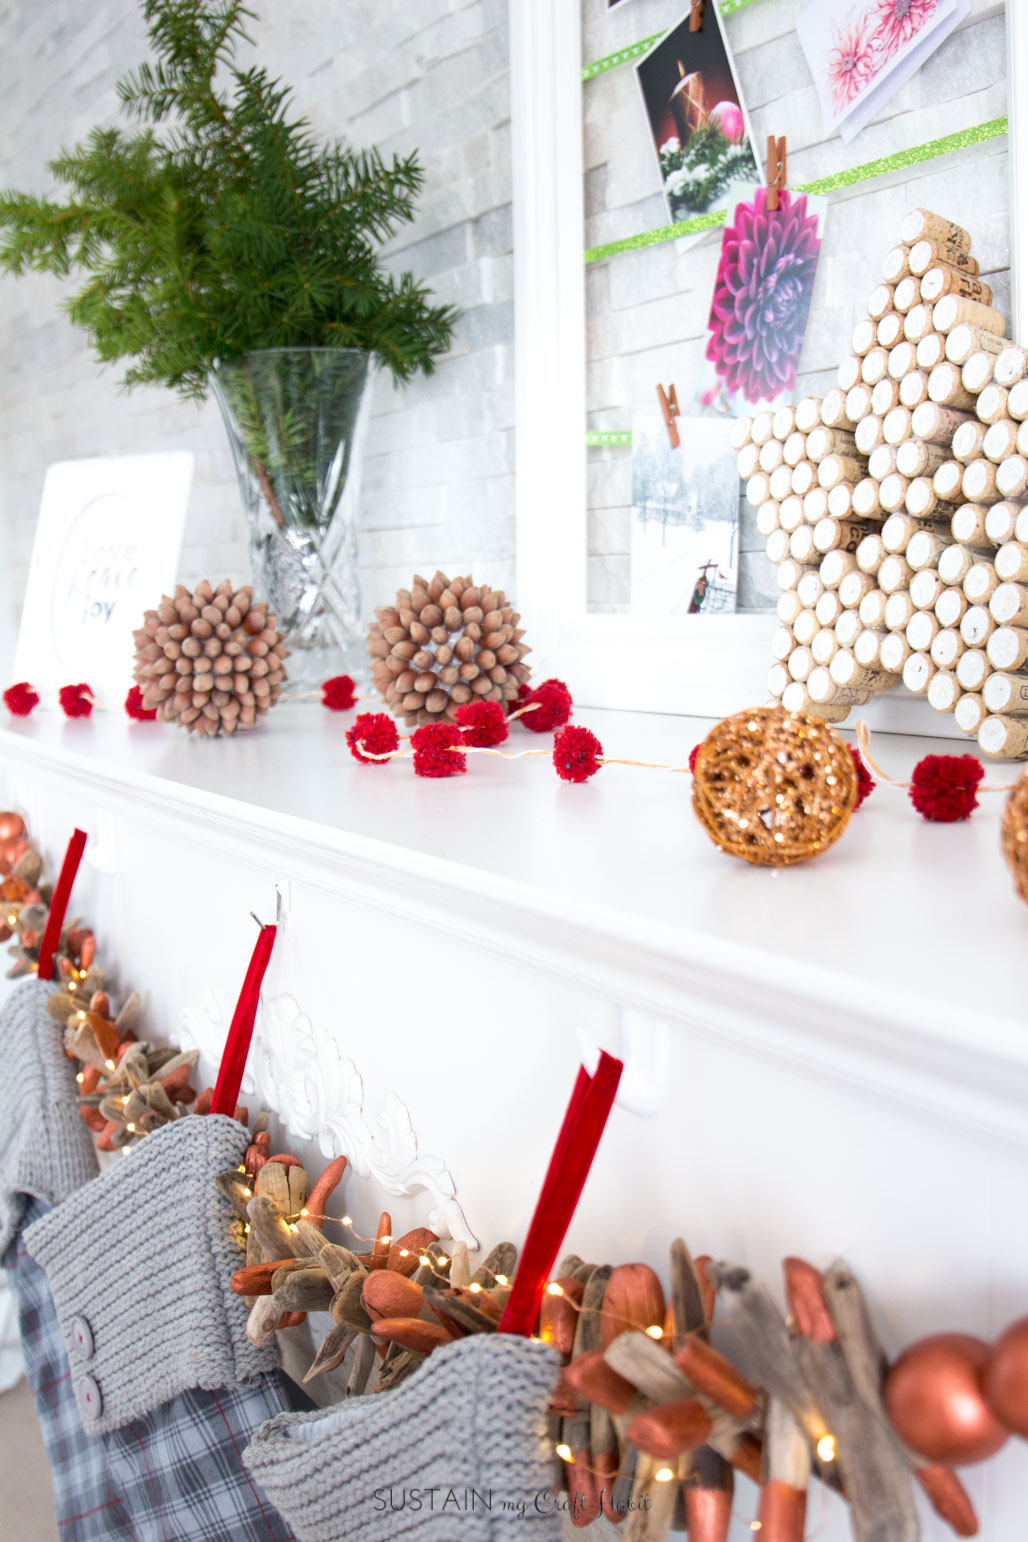 Create Your own Rustic Christmas Mantel with These 10 DIY ...